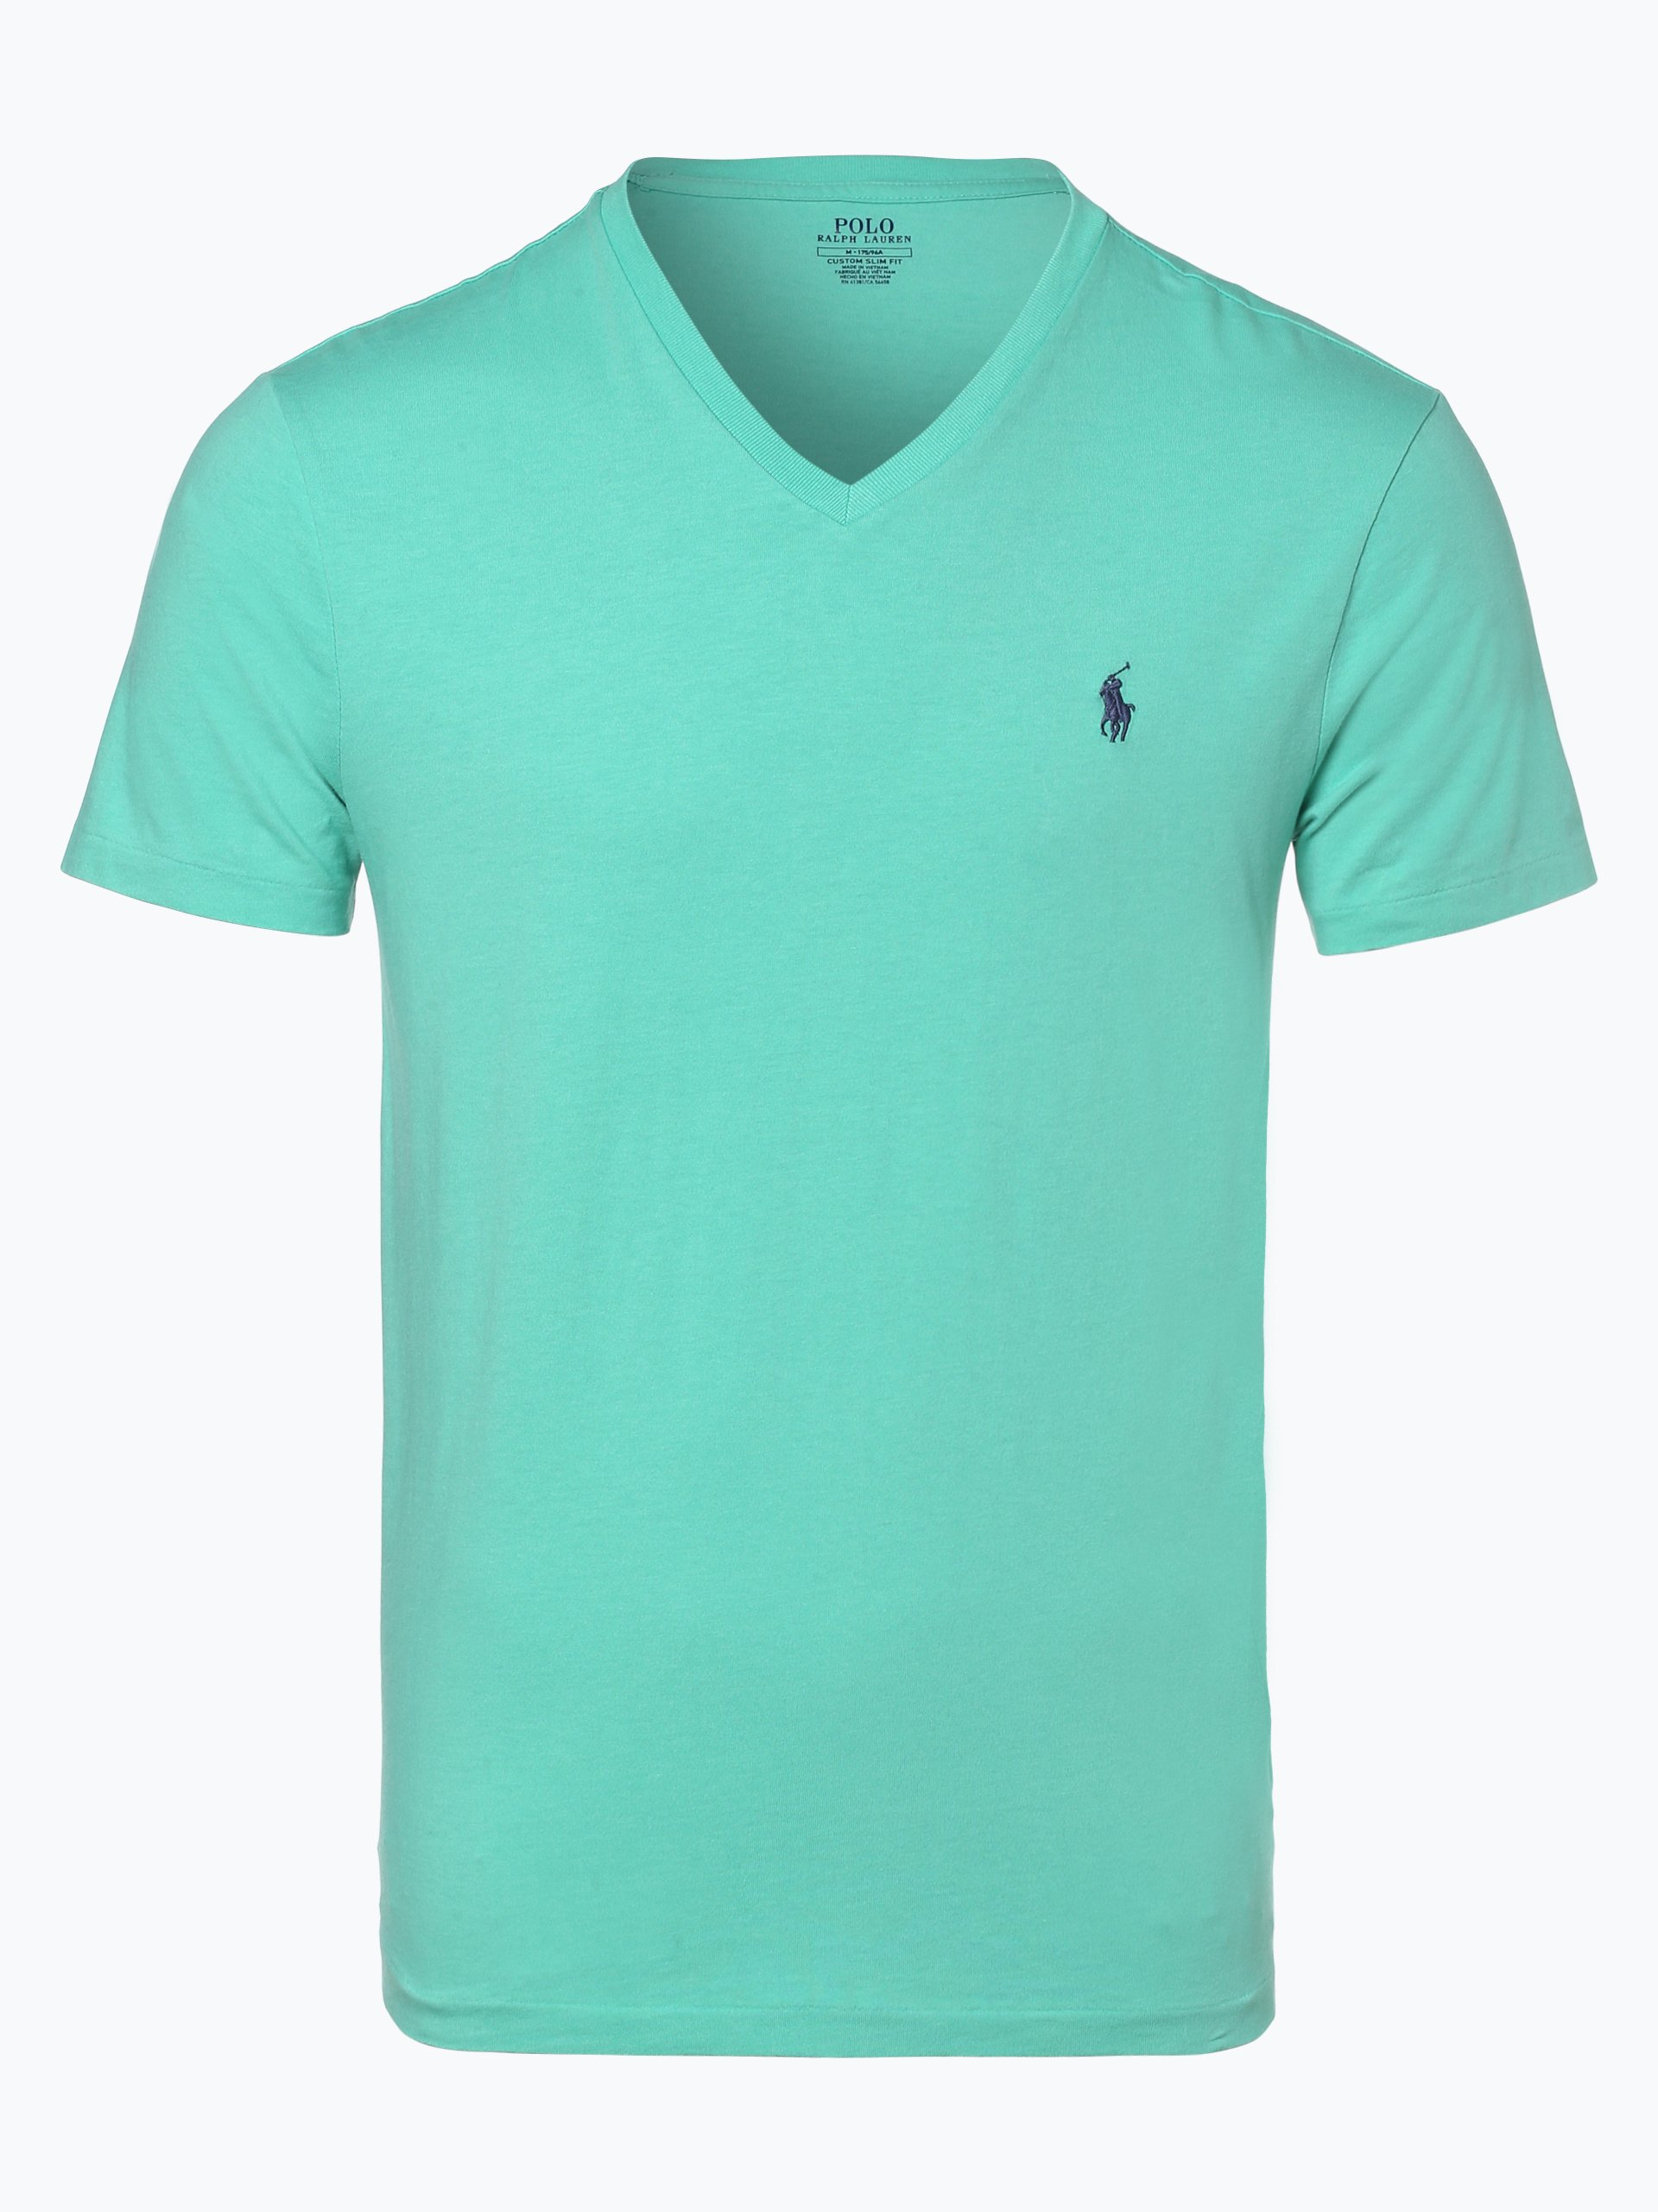 Polo Ralph Lauren Herren T-Shirt - Custom Slim Fit